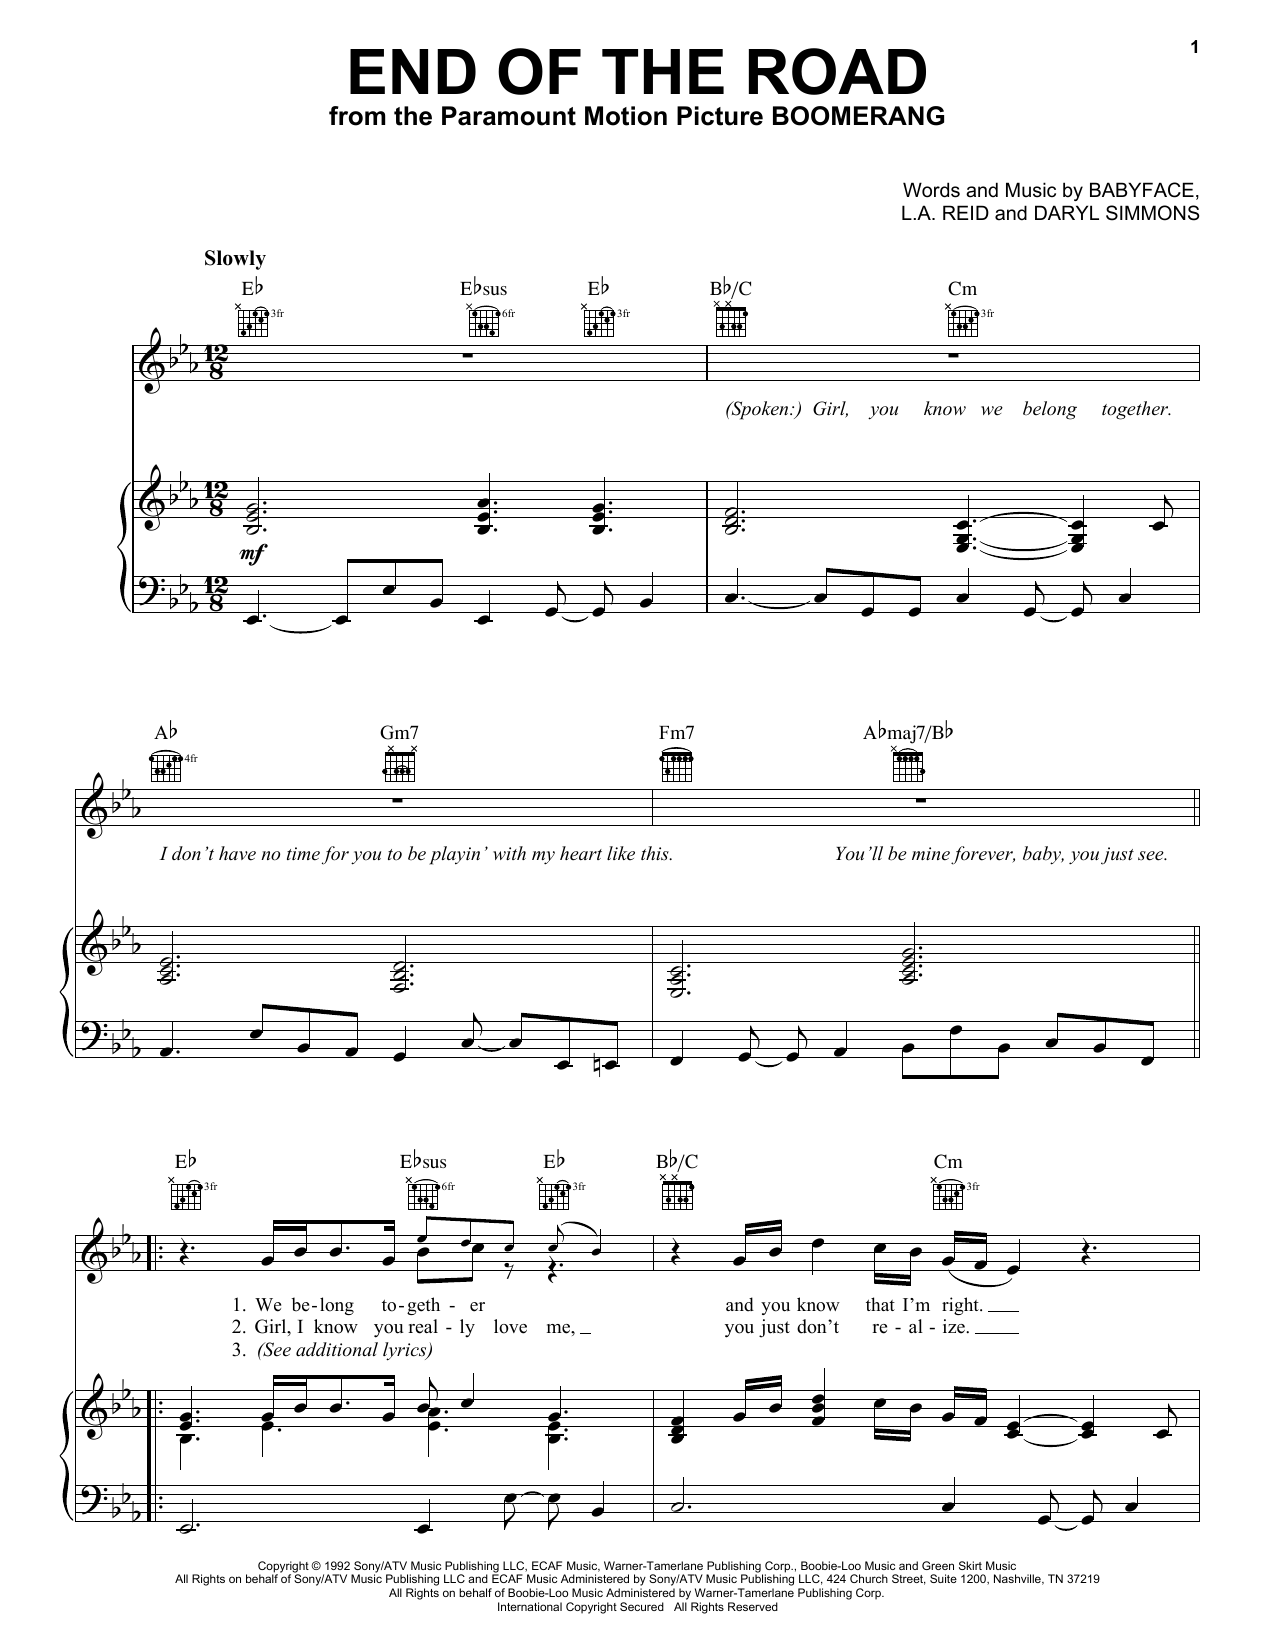 Boyz II Men End Of The Road sheet music notes and chords. Download Printable PDF.